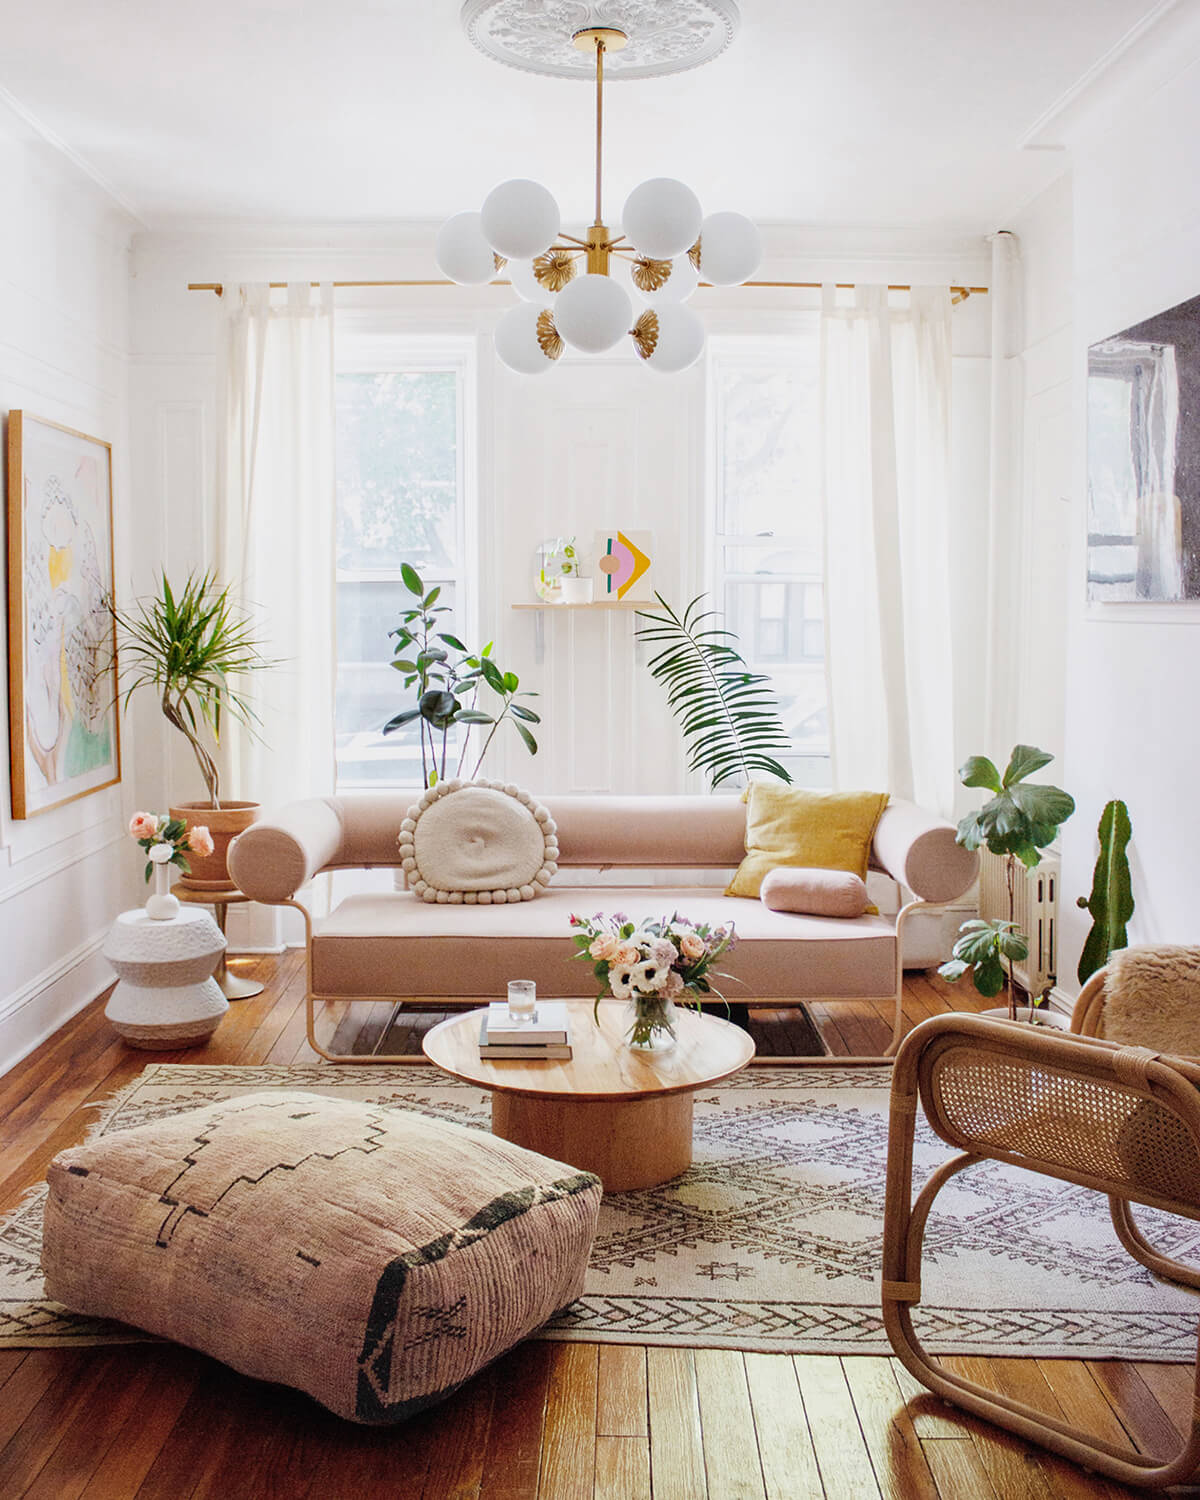 20 Best Small Apartment Living Room Decor and Design Ideas ... on Small Room Decoration  id=56185